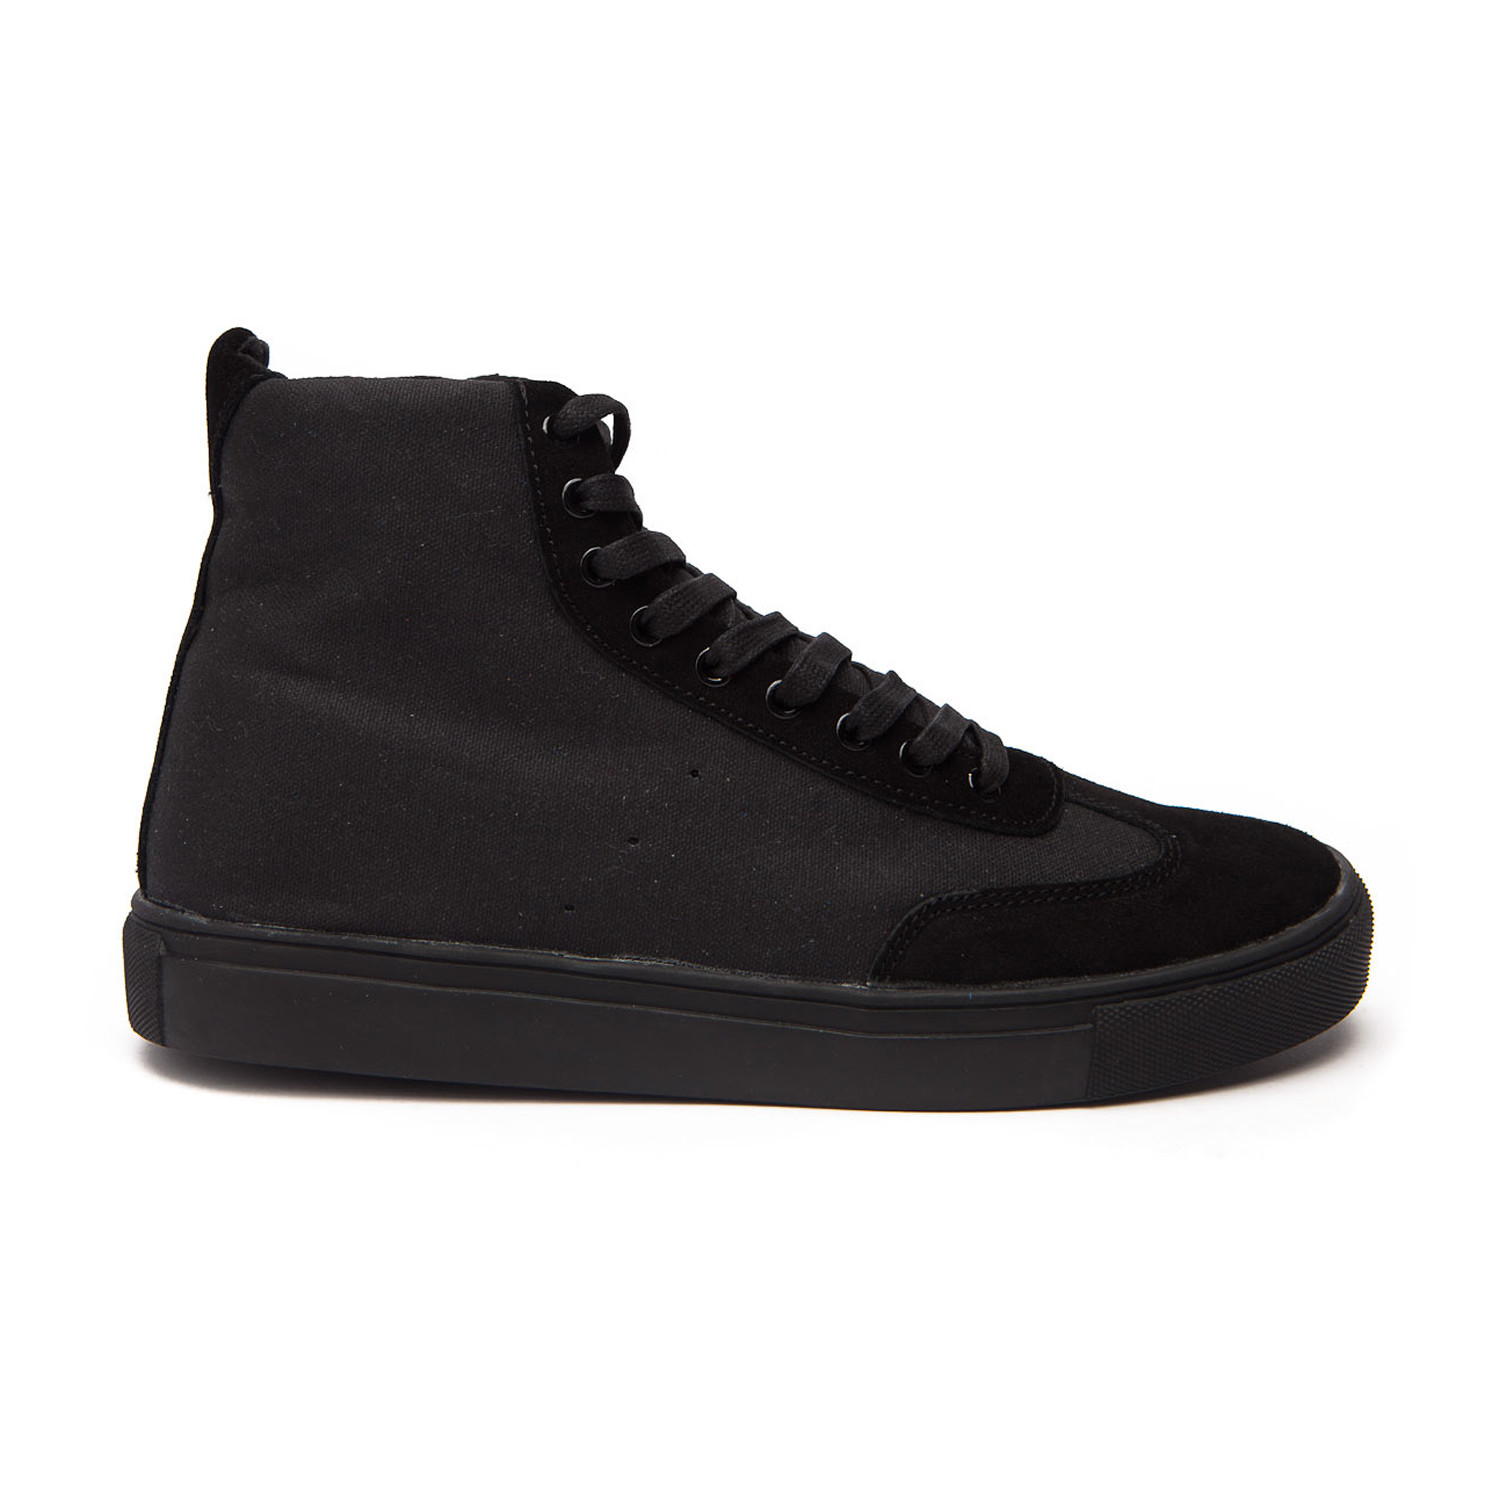 8d39a3491202f1 Champion Canvas + Suede High Top Sneaker    Black (US  7) - Generic ...